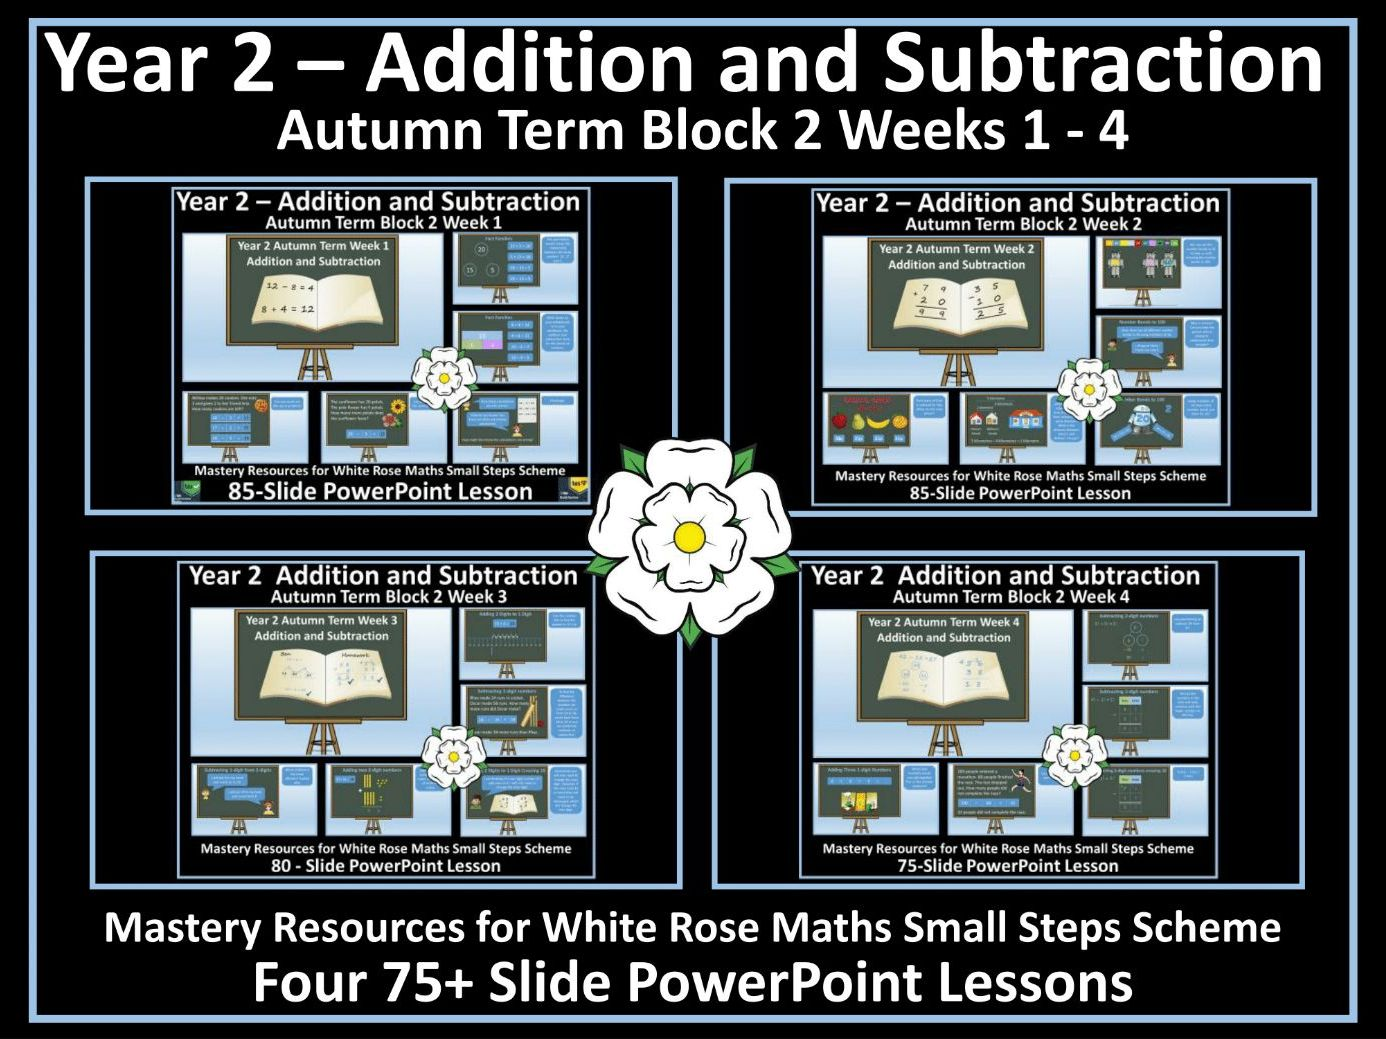 Addition and Subtraction: 4 PowerPoint Lessons for White Rose Small Steps - Year 2 - Block 2 - Autumn Term